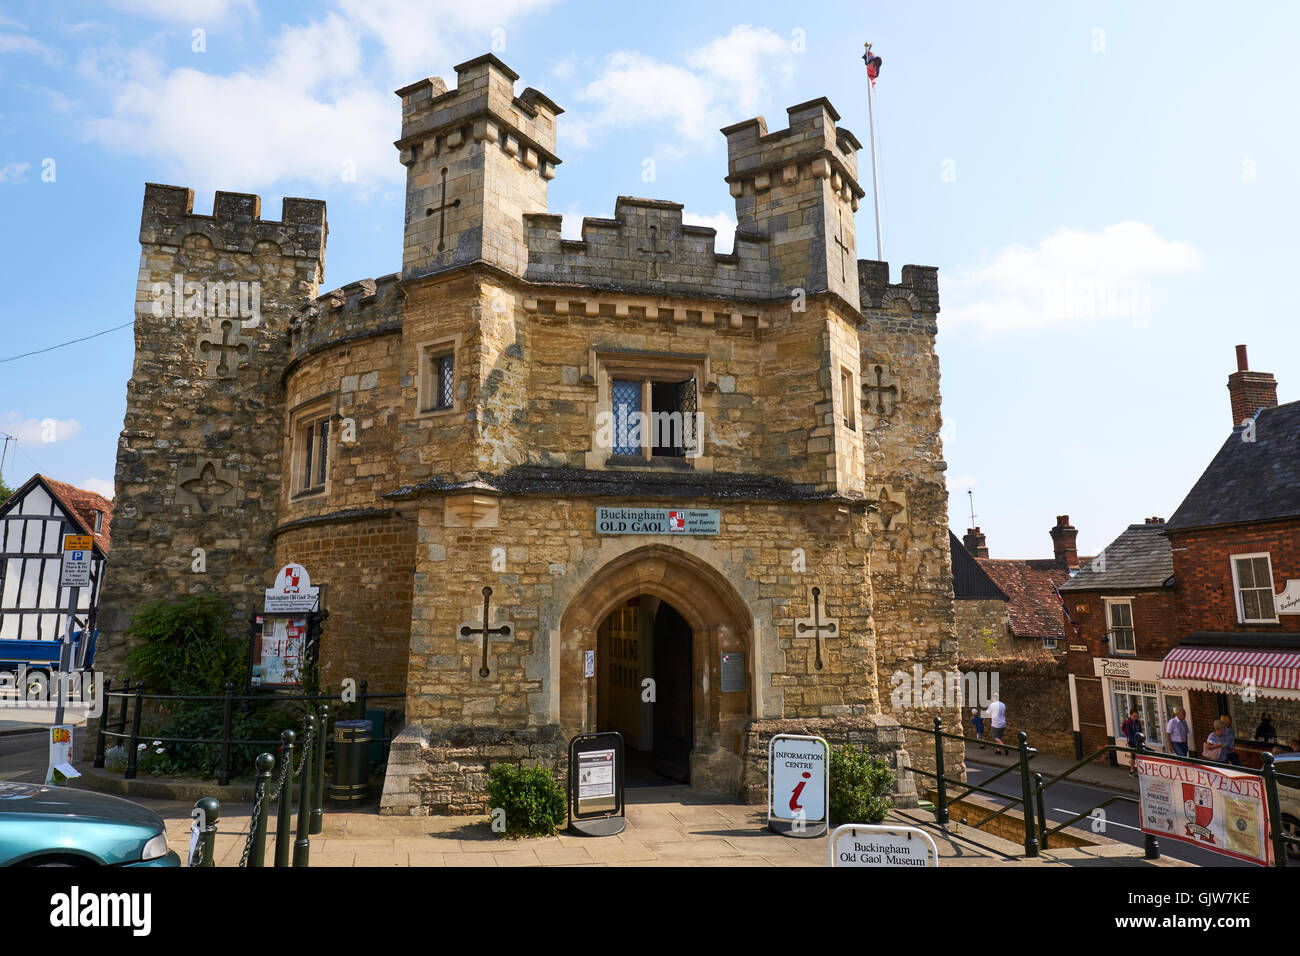 Old County Gaol Built In 1748 Now The Museum Market Hill Buckingham Buckinghamshire UK - Stock Image